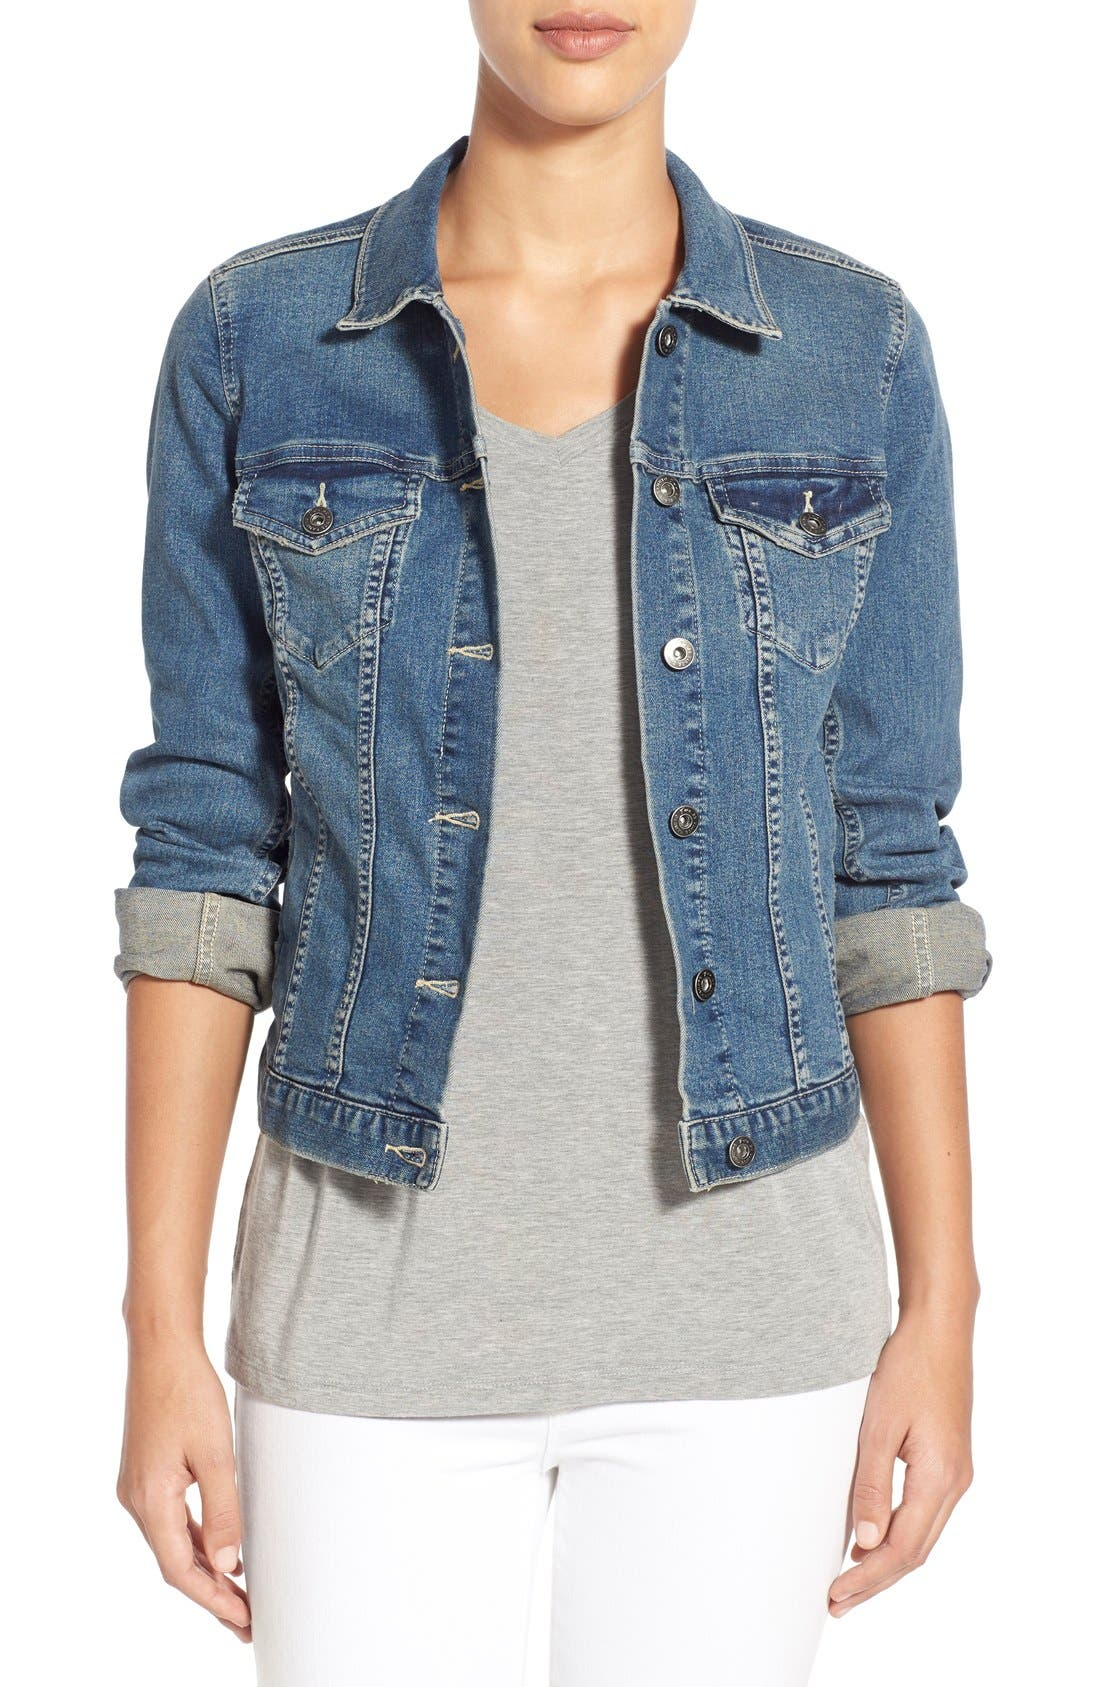 Alternate Image 1 Selected - Two by Vince Camuto Jean Jacket (Regular & Petite)